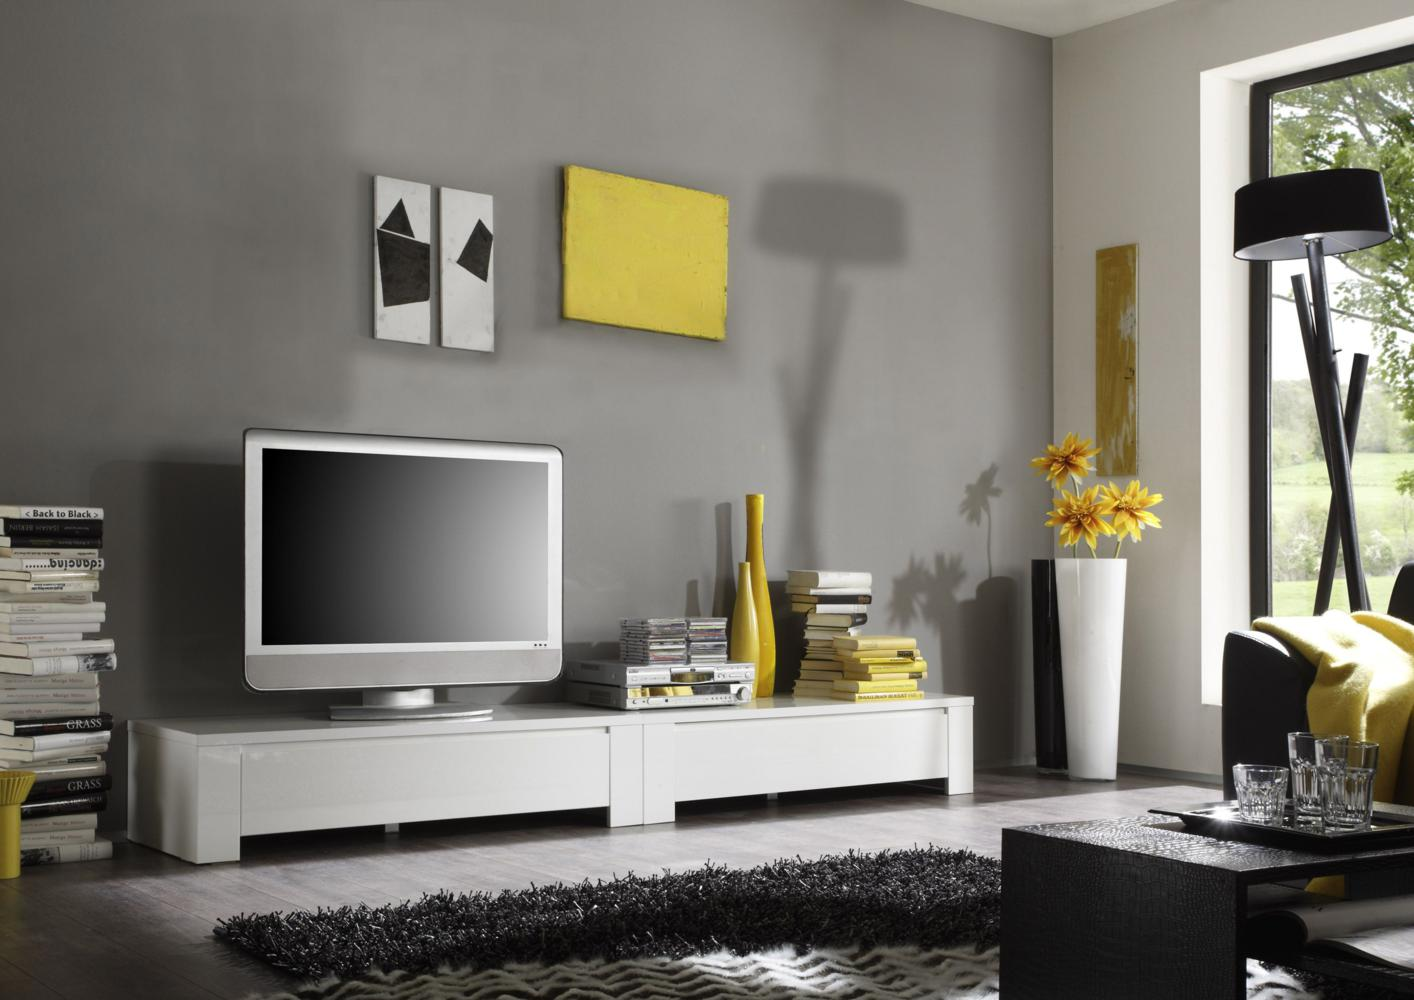 acheter votre meuble tv bas laqu blanc chez simeuble. Black Bedroom Furniture Sets. Home Design Ideas